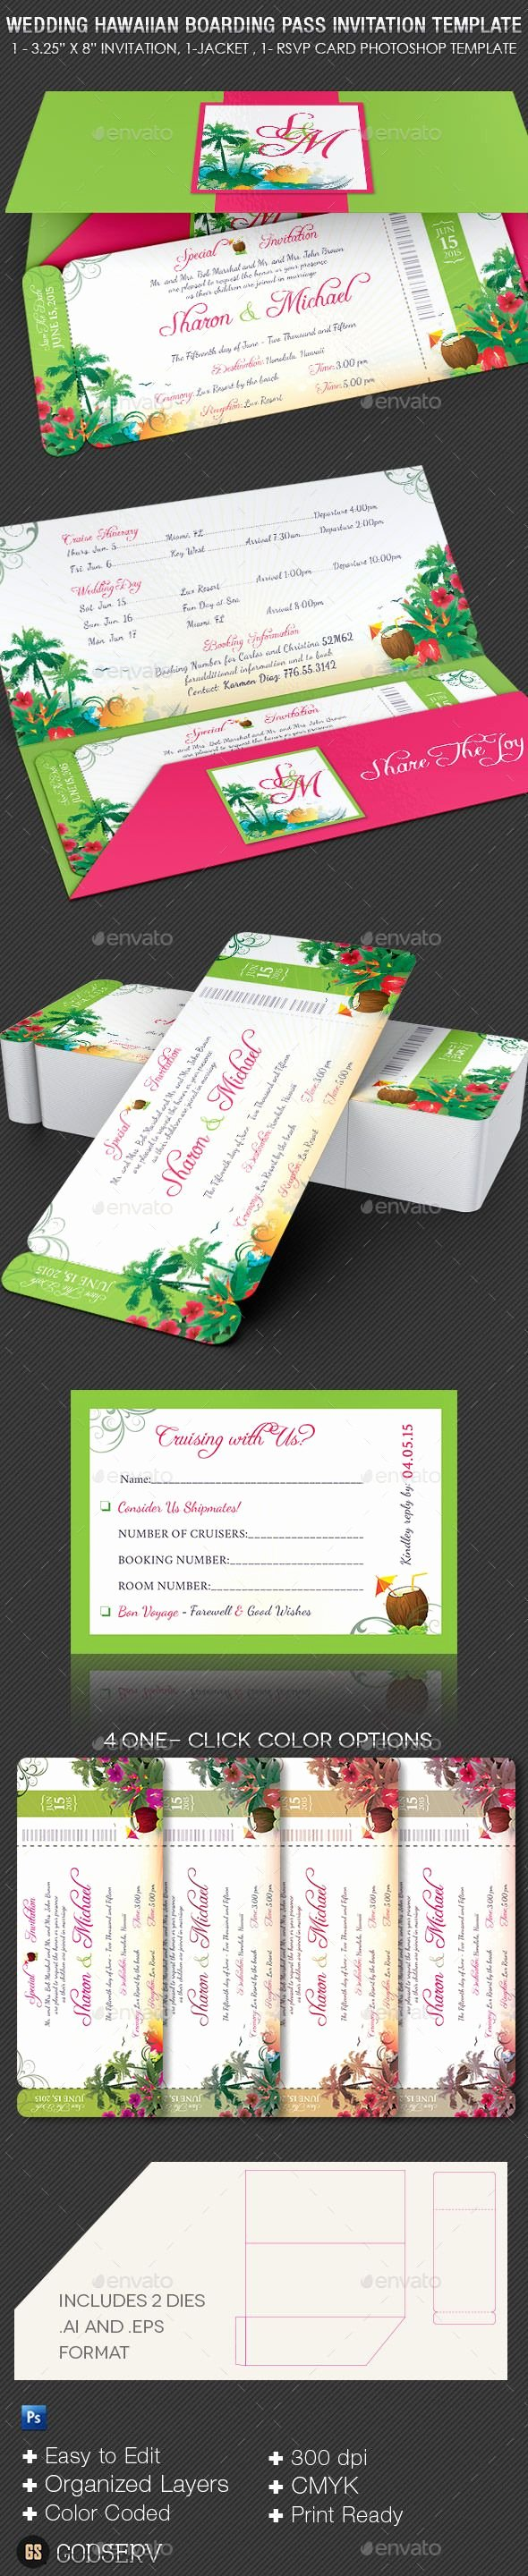 Boarding Pass Template Photoshop Fresh Pin by Best Graphic Design On Card & Invite Design